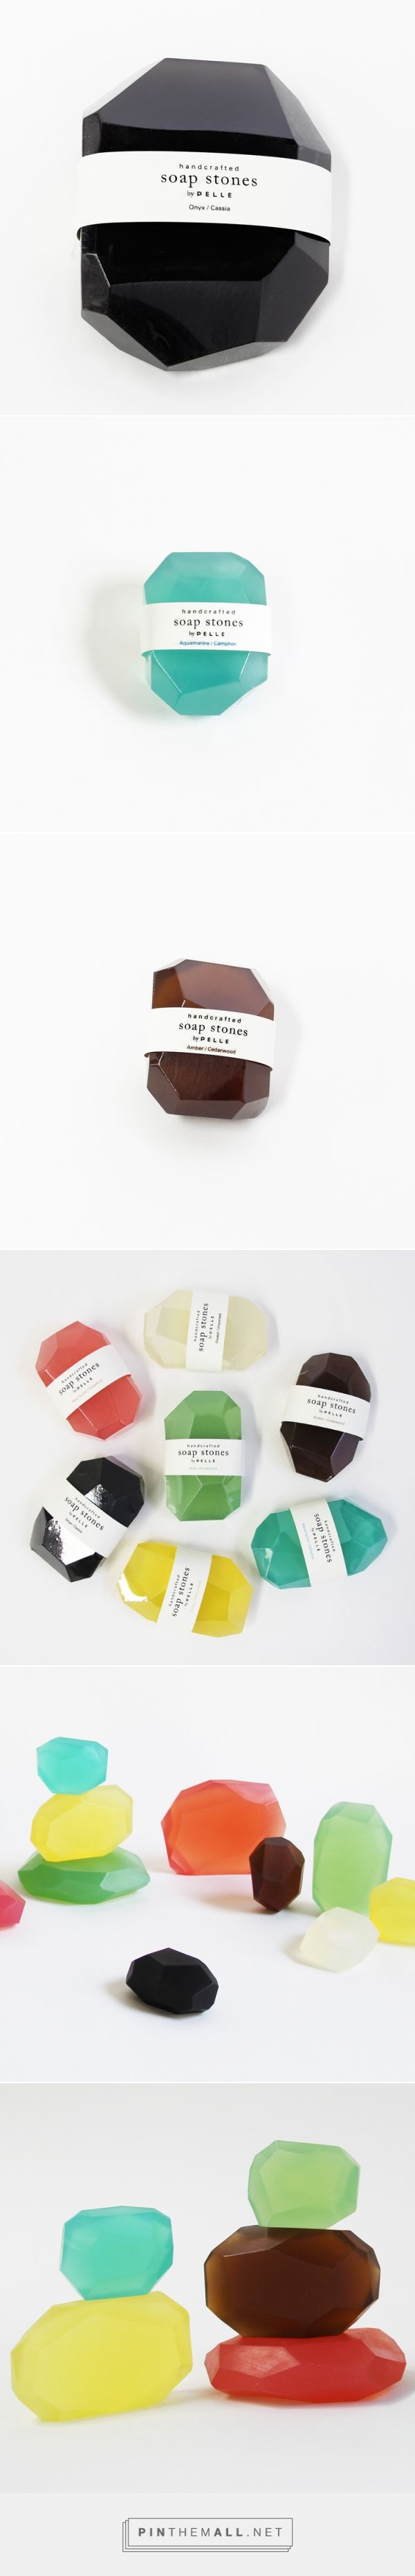 Pelle Soap Stones — The Dieline - Branding & Packaging